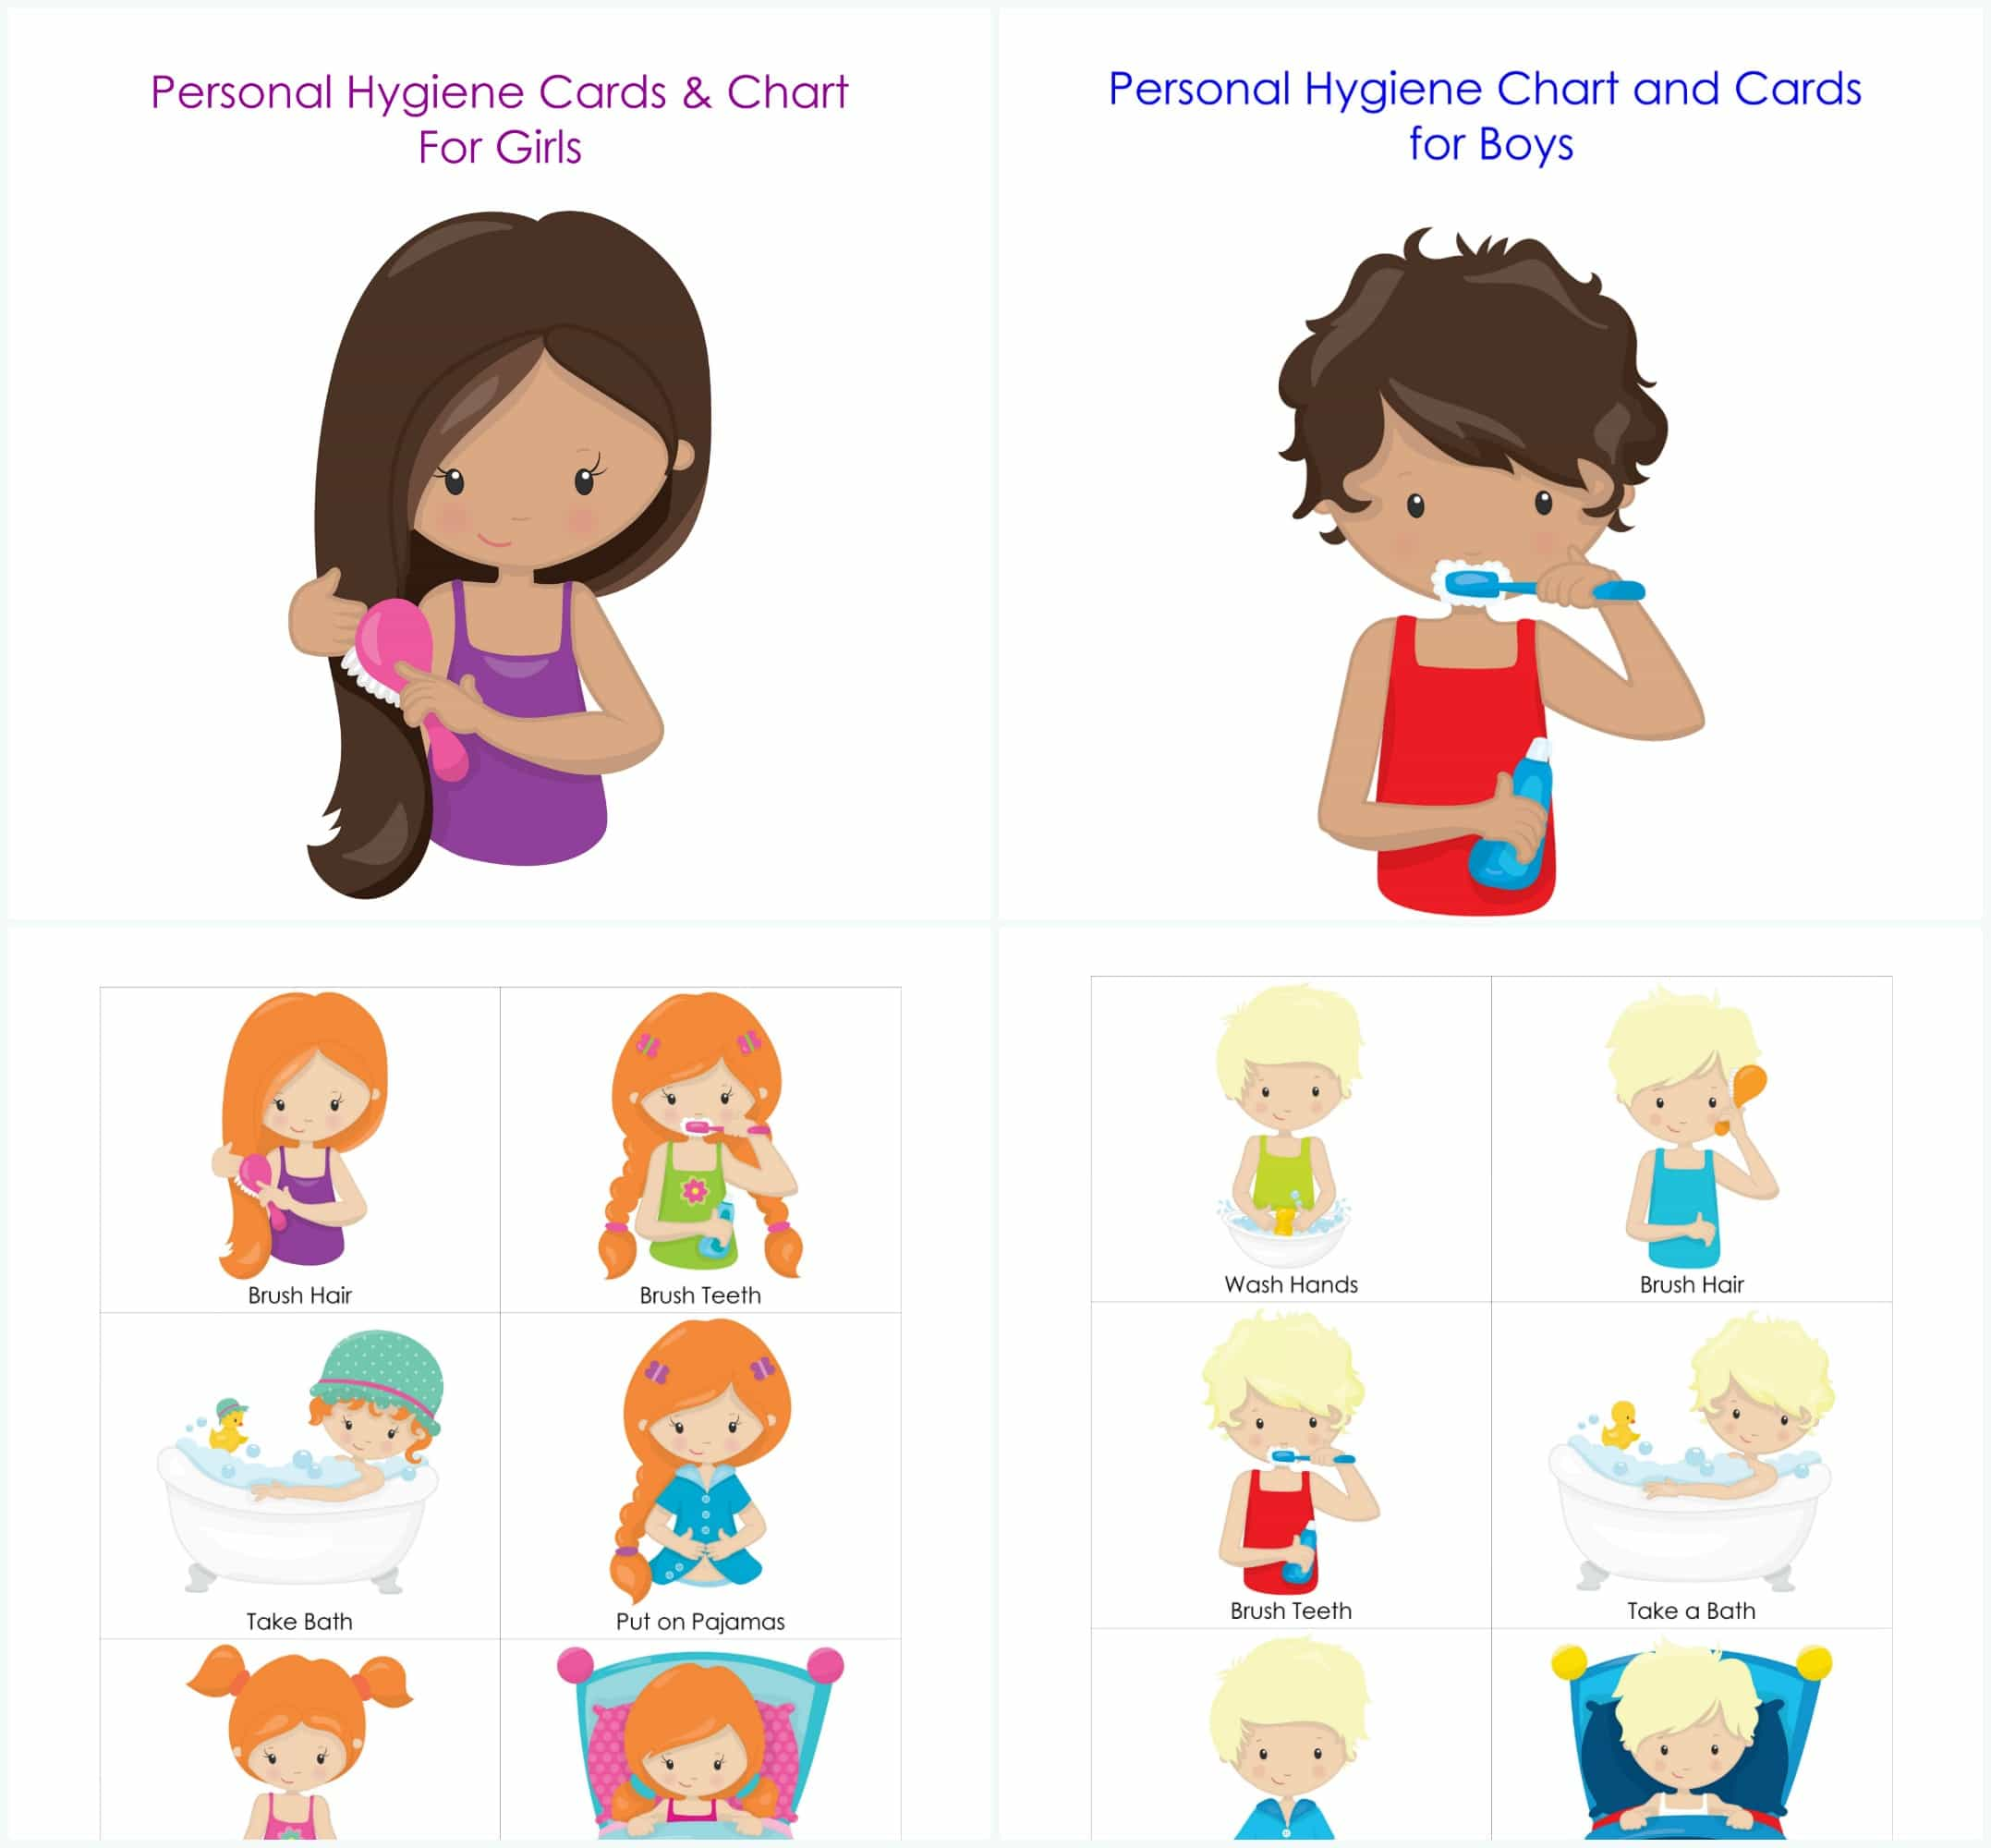 Personal Hygiene And Bedtime Routine Chart And Cards For Girls And Boys